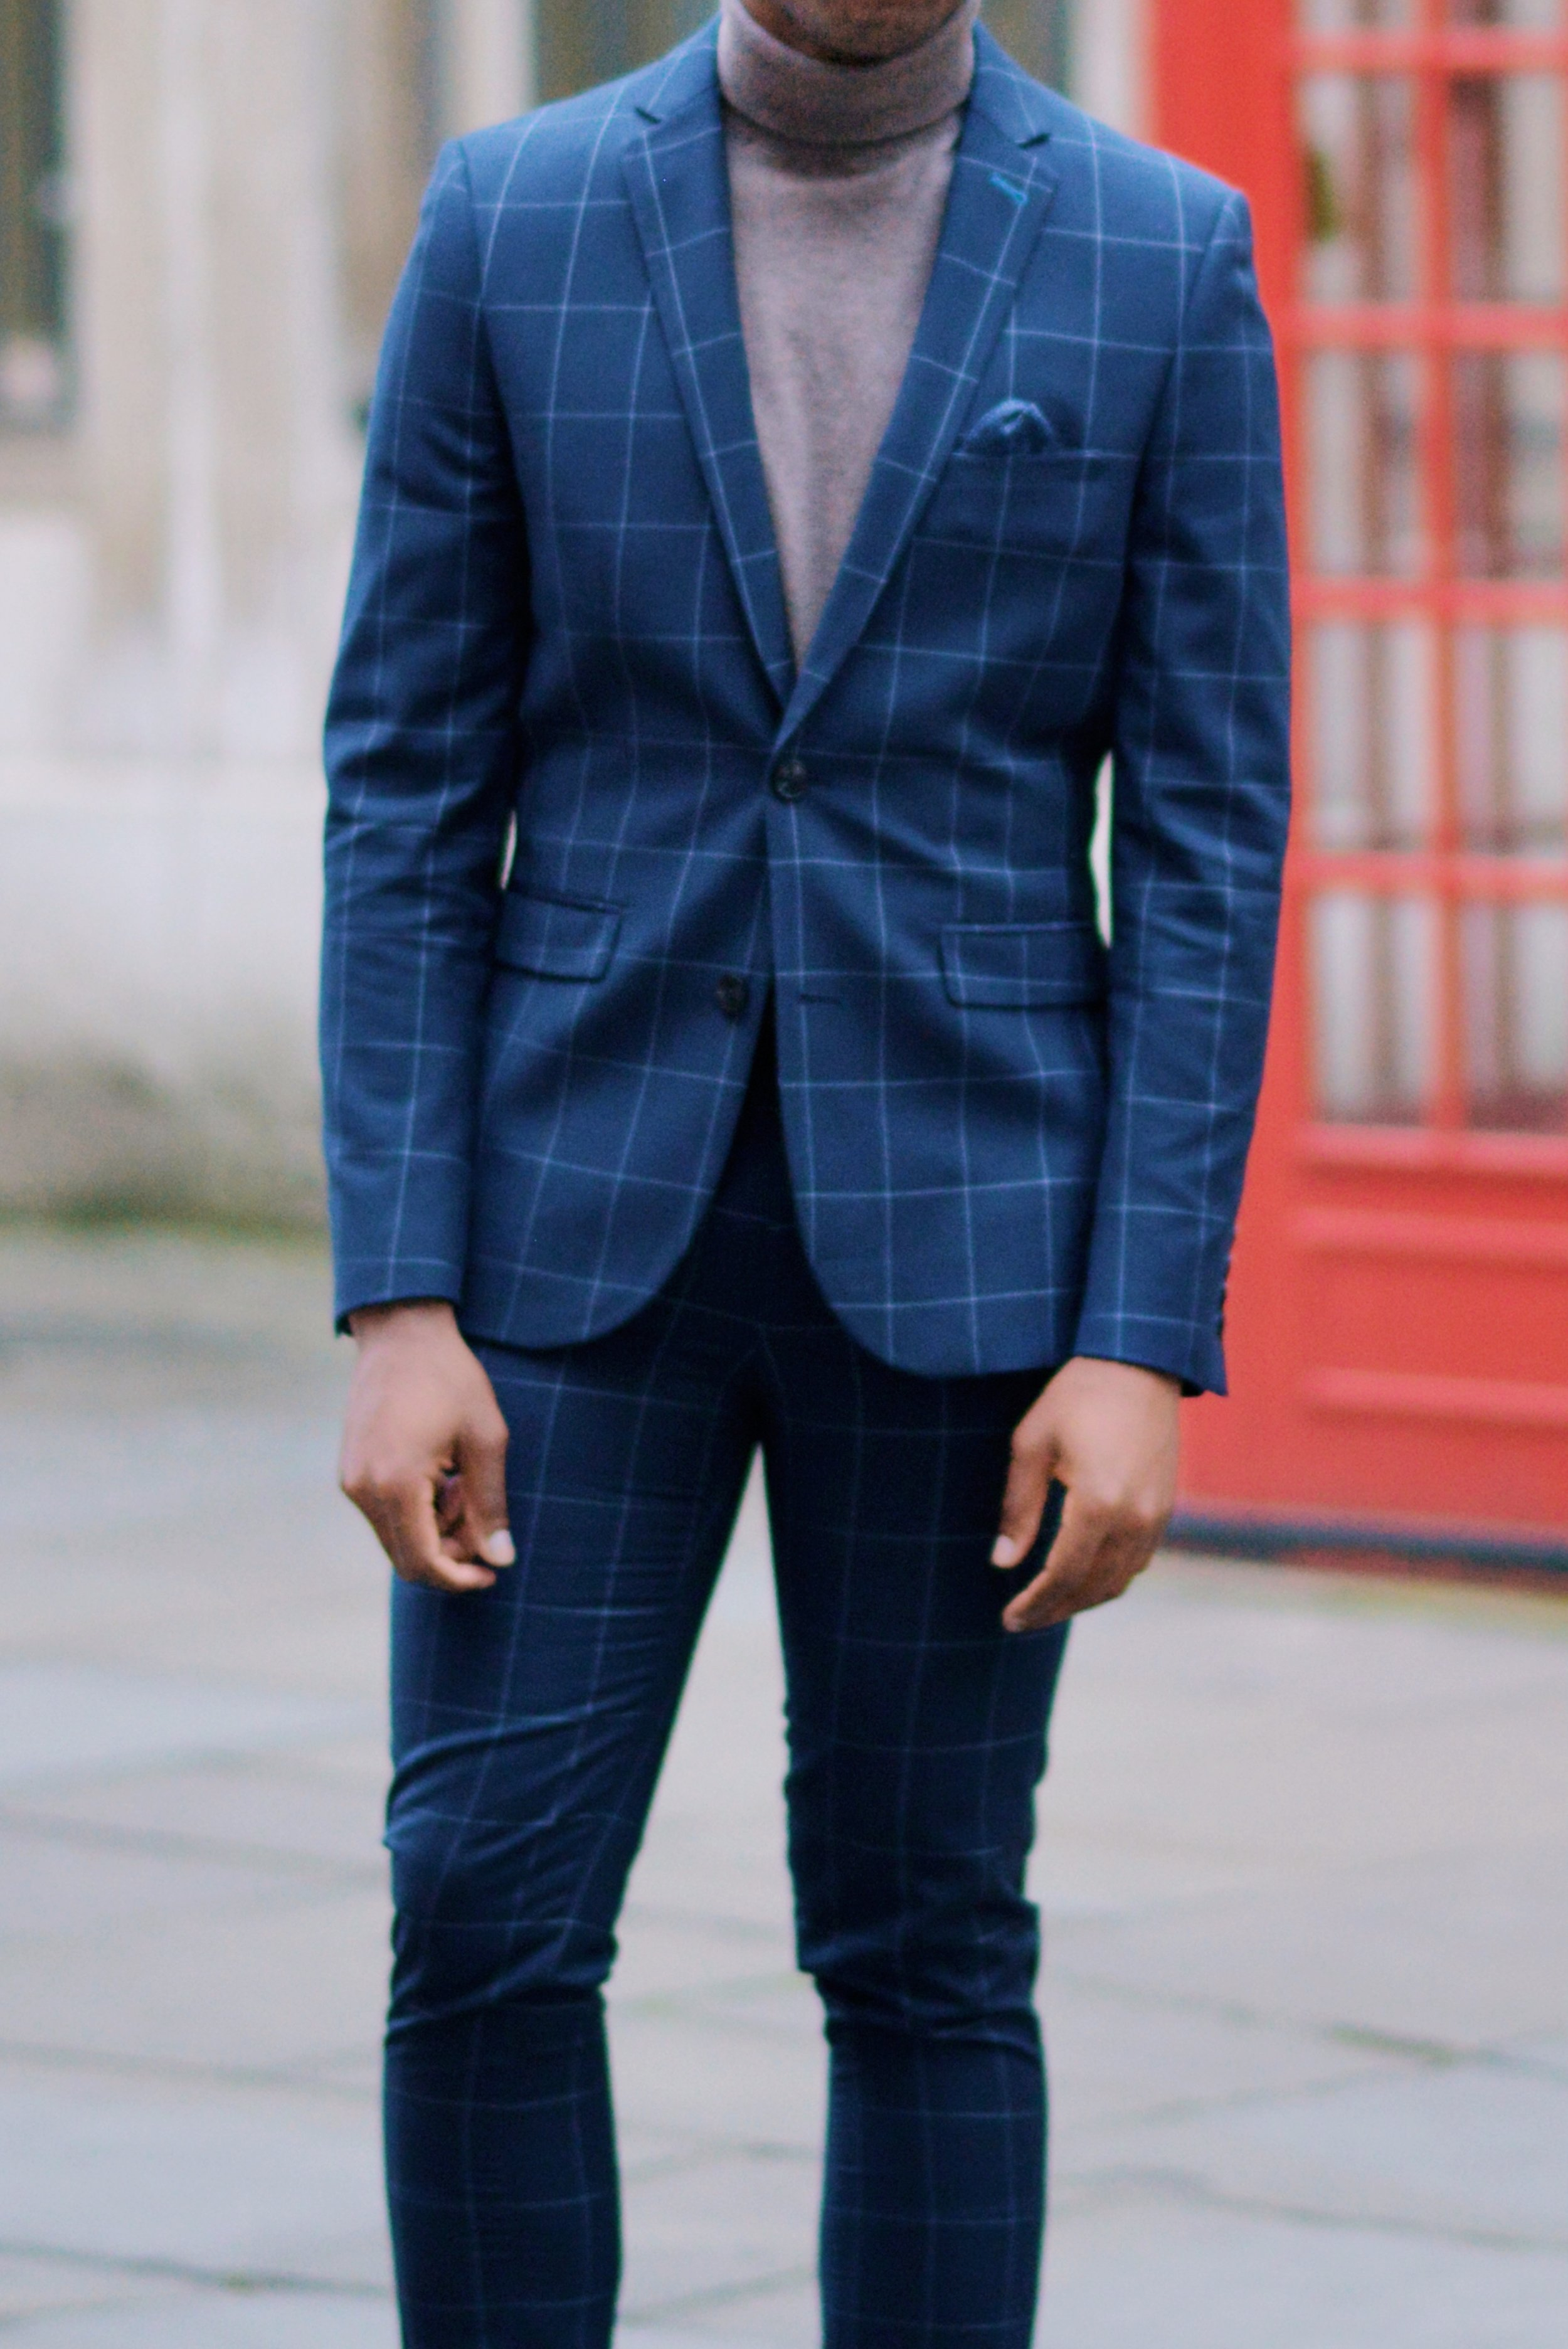 The-Look-Principle-Suited-Up-In-London-3.jpg